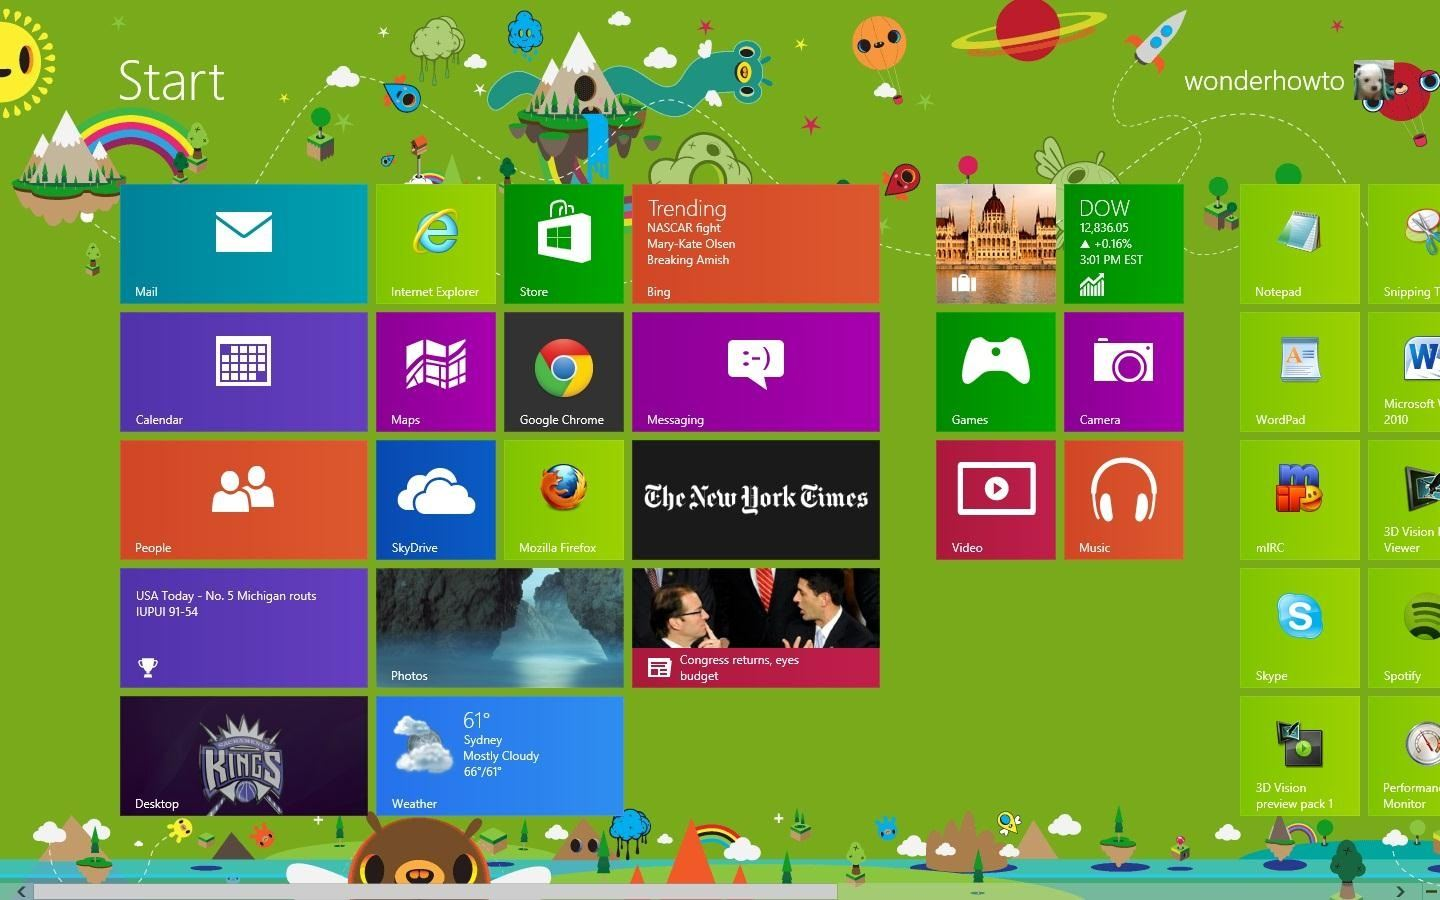 Windows 8 background images - How To Add A Custom Background Image To The Start Screen